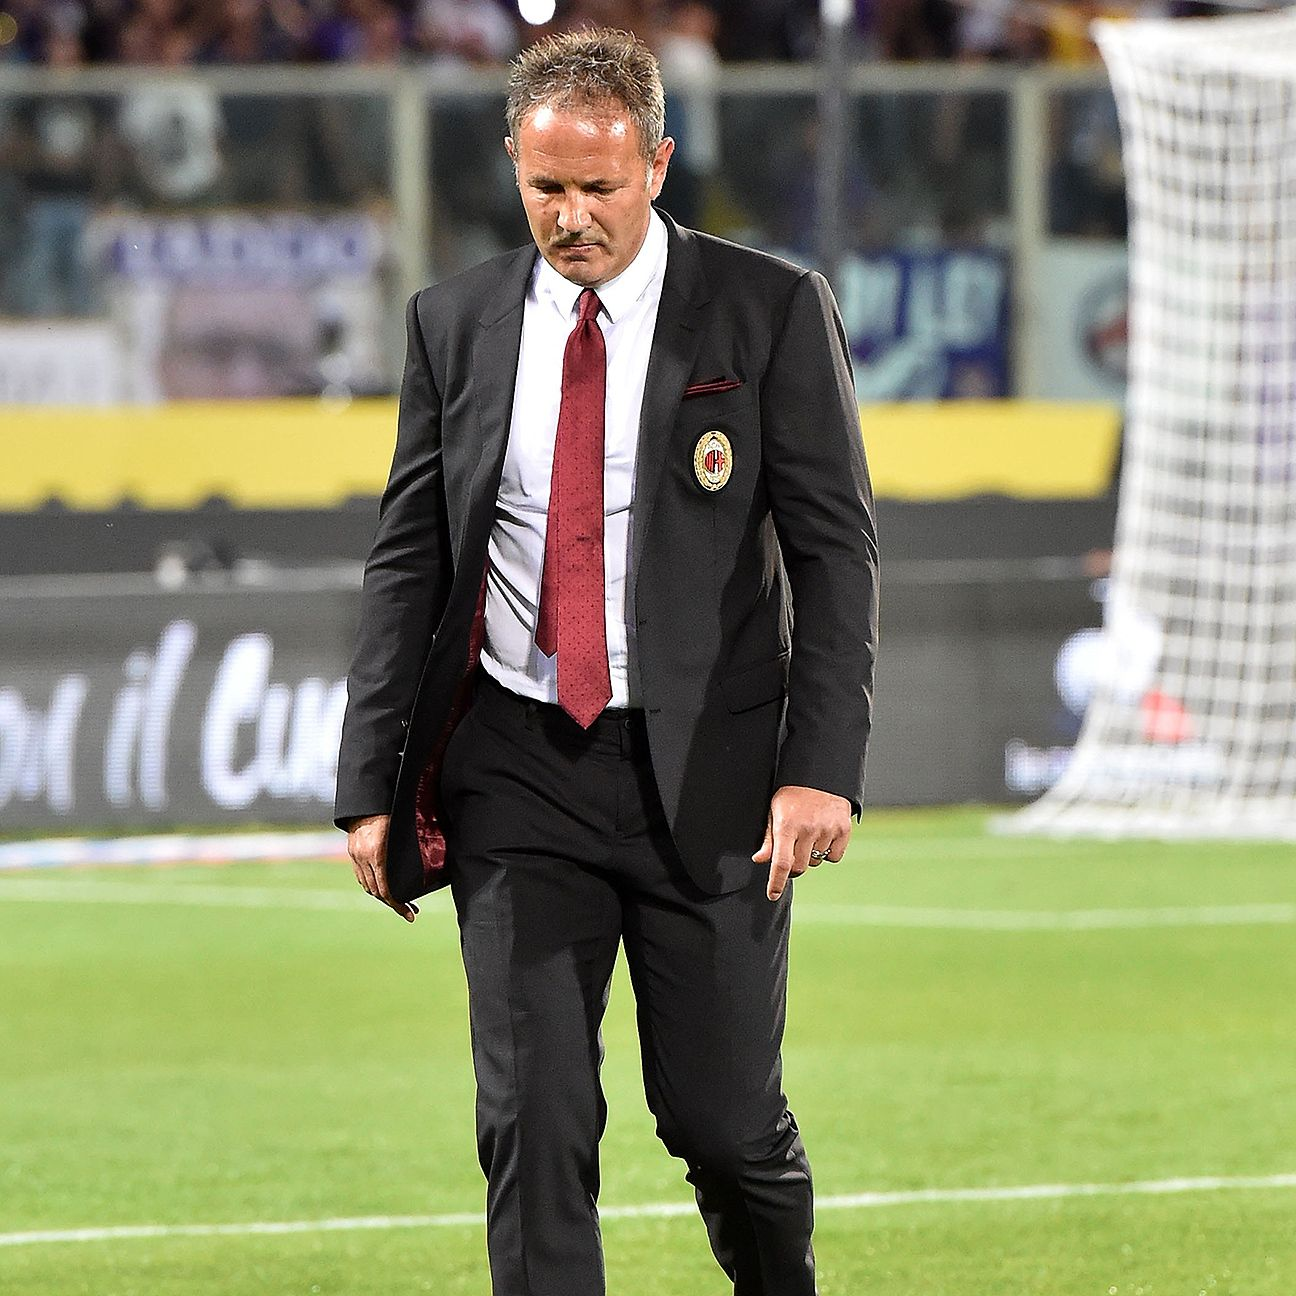 The Sinisa Mihajlovic era at AC Milan got off to a dismal start with a 2-0 loss at Fiorentina.